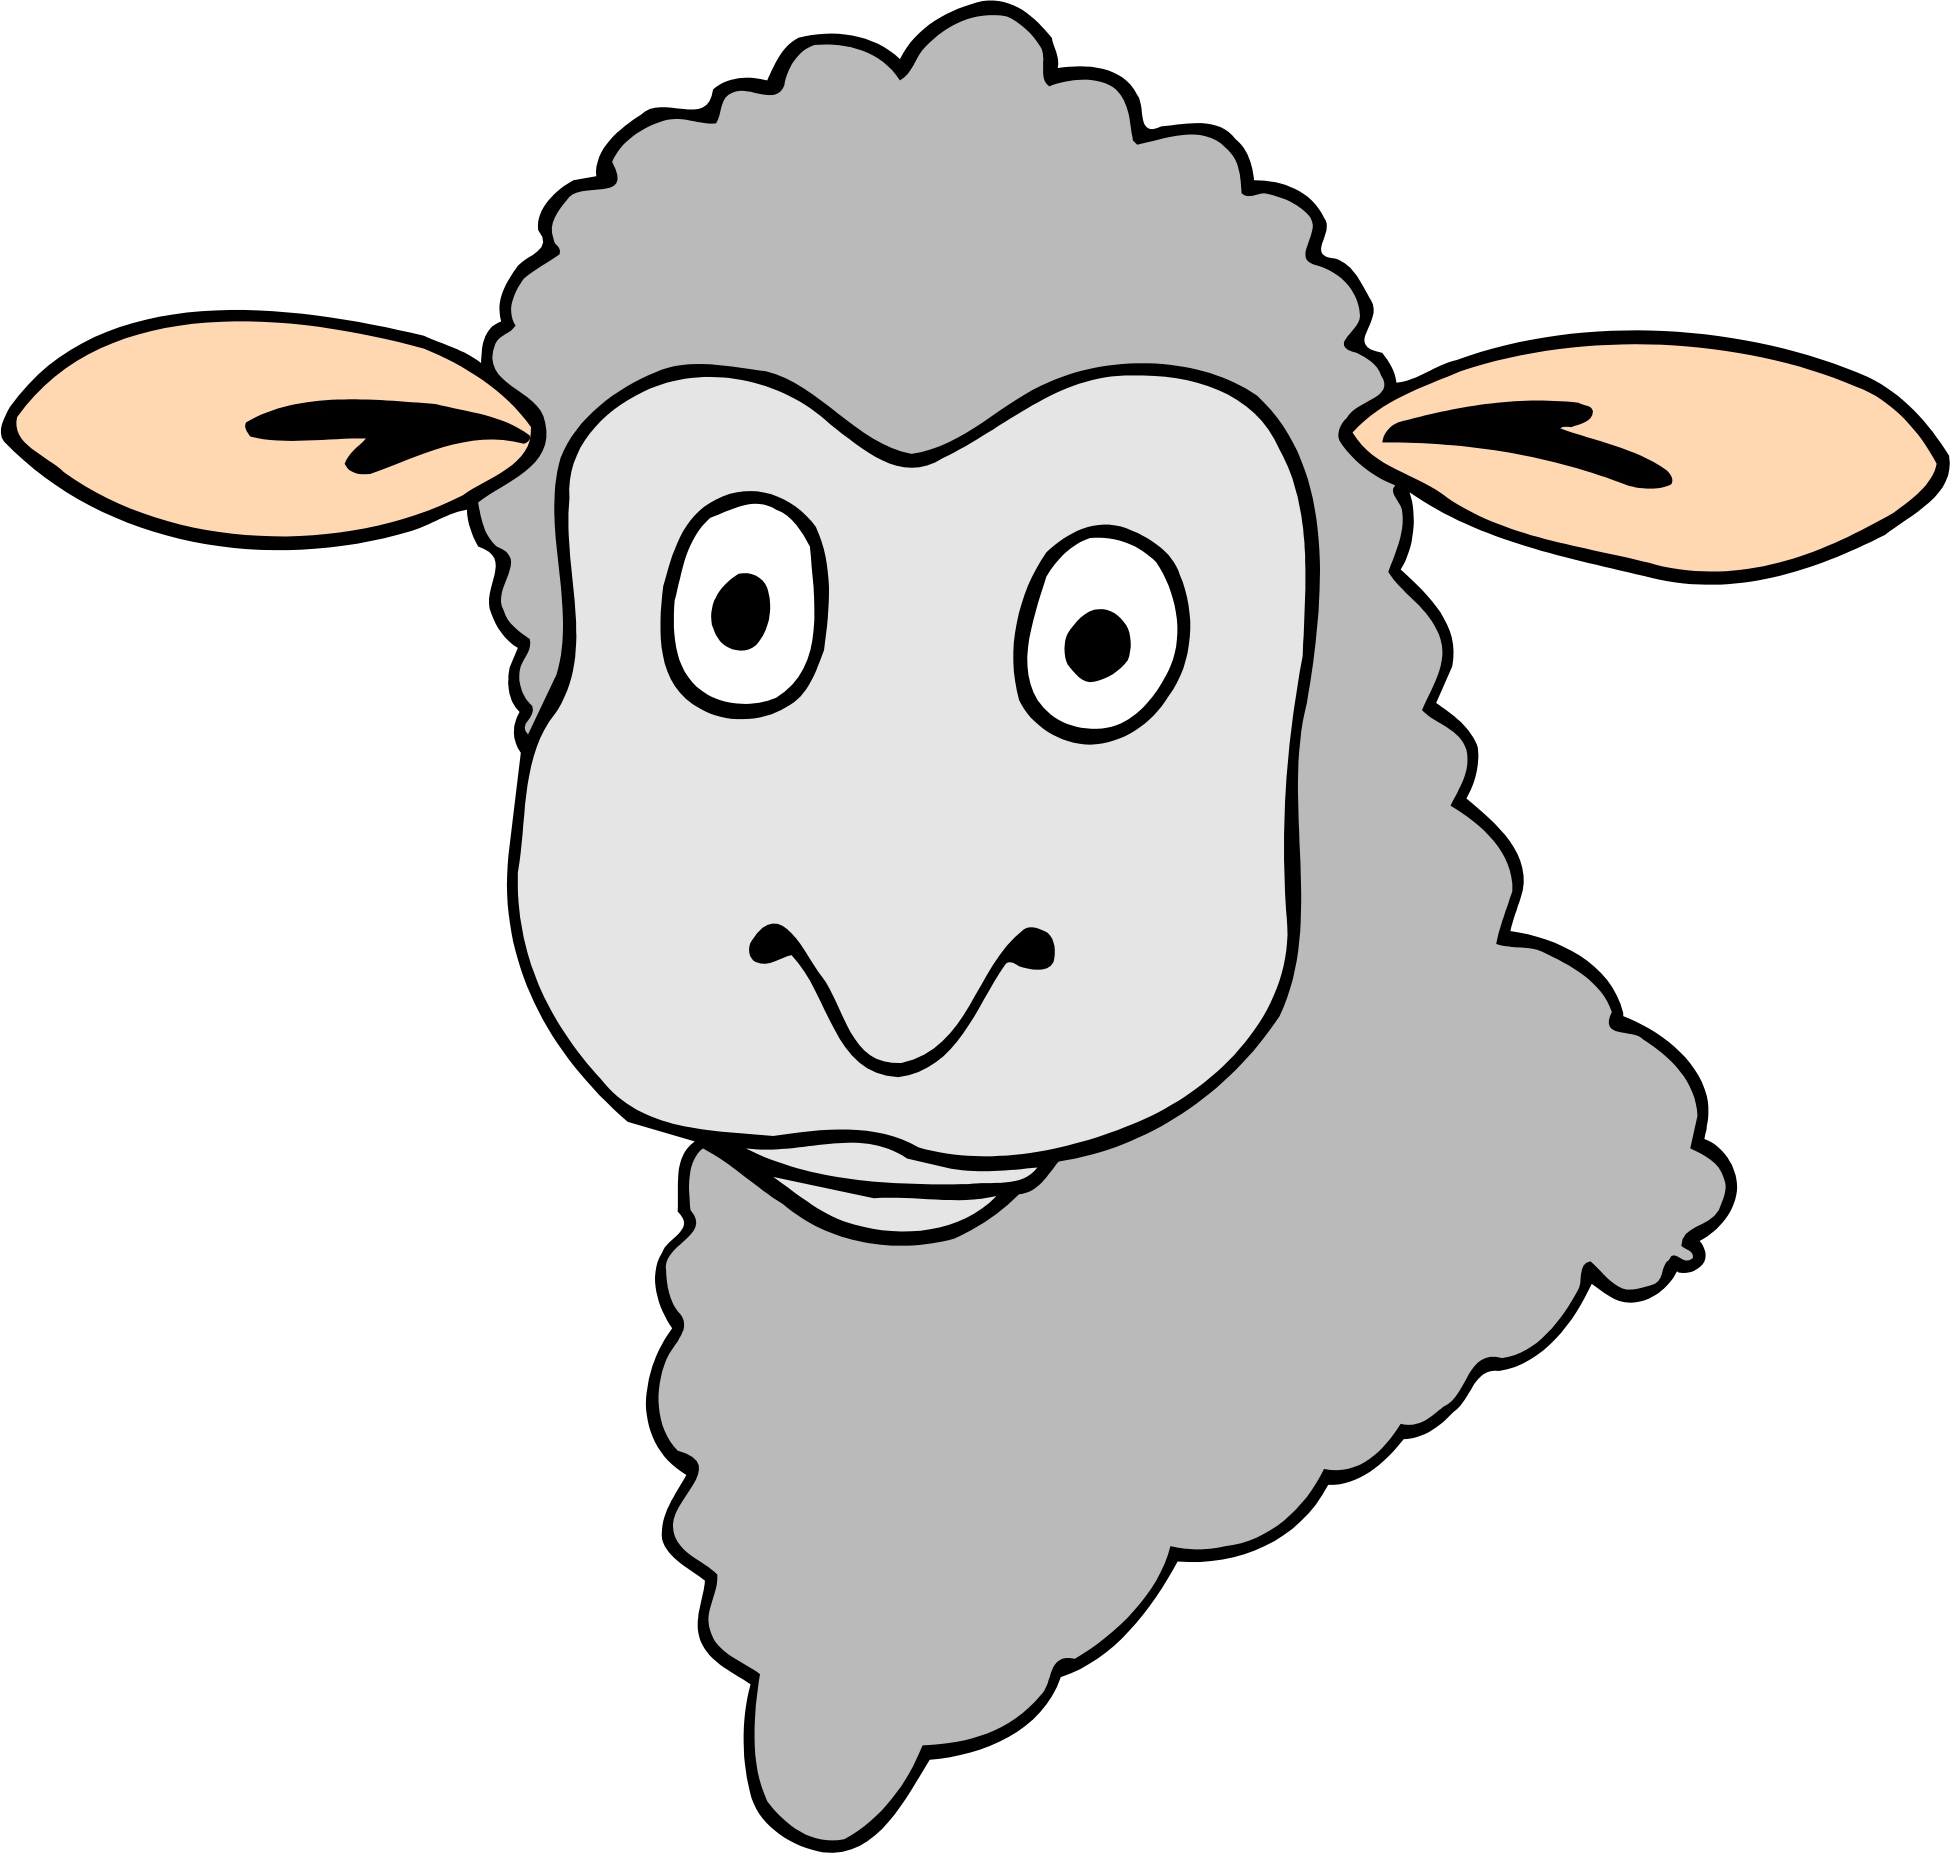 Sheep hat network clipart #13